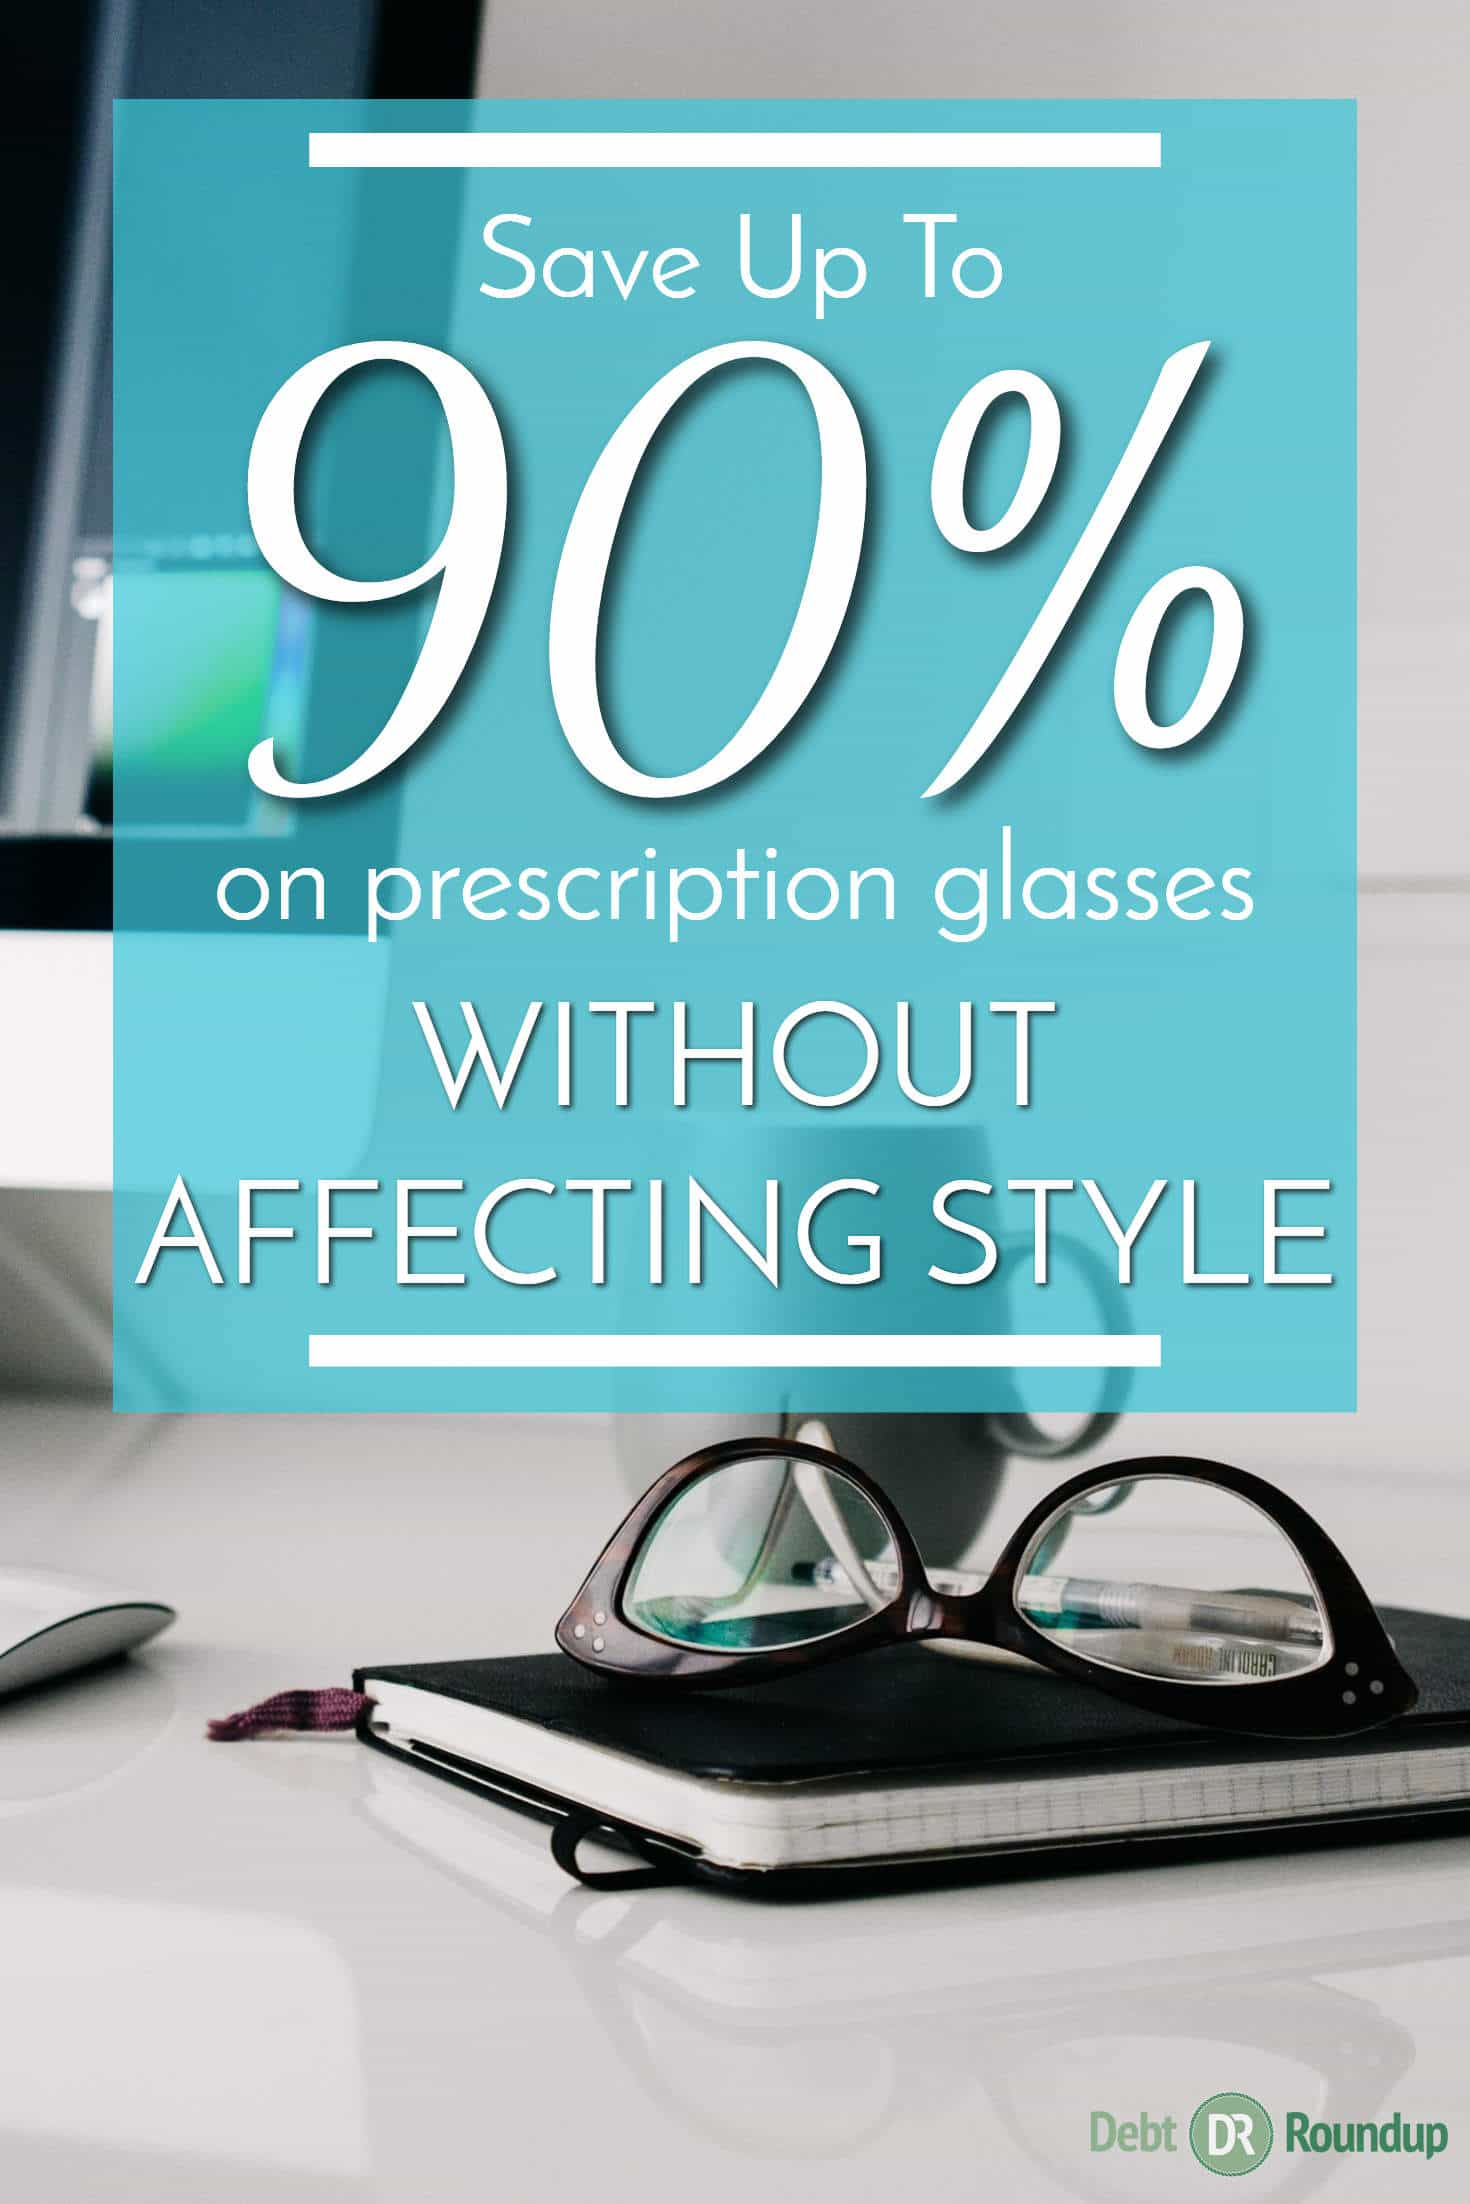 How to save up to 90% on prescription glasses